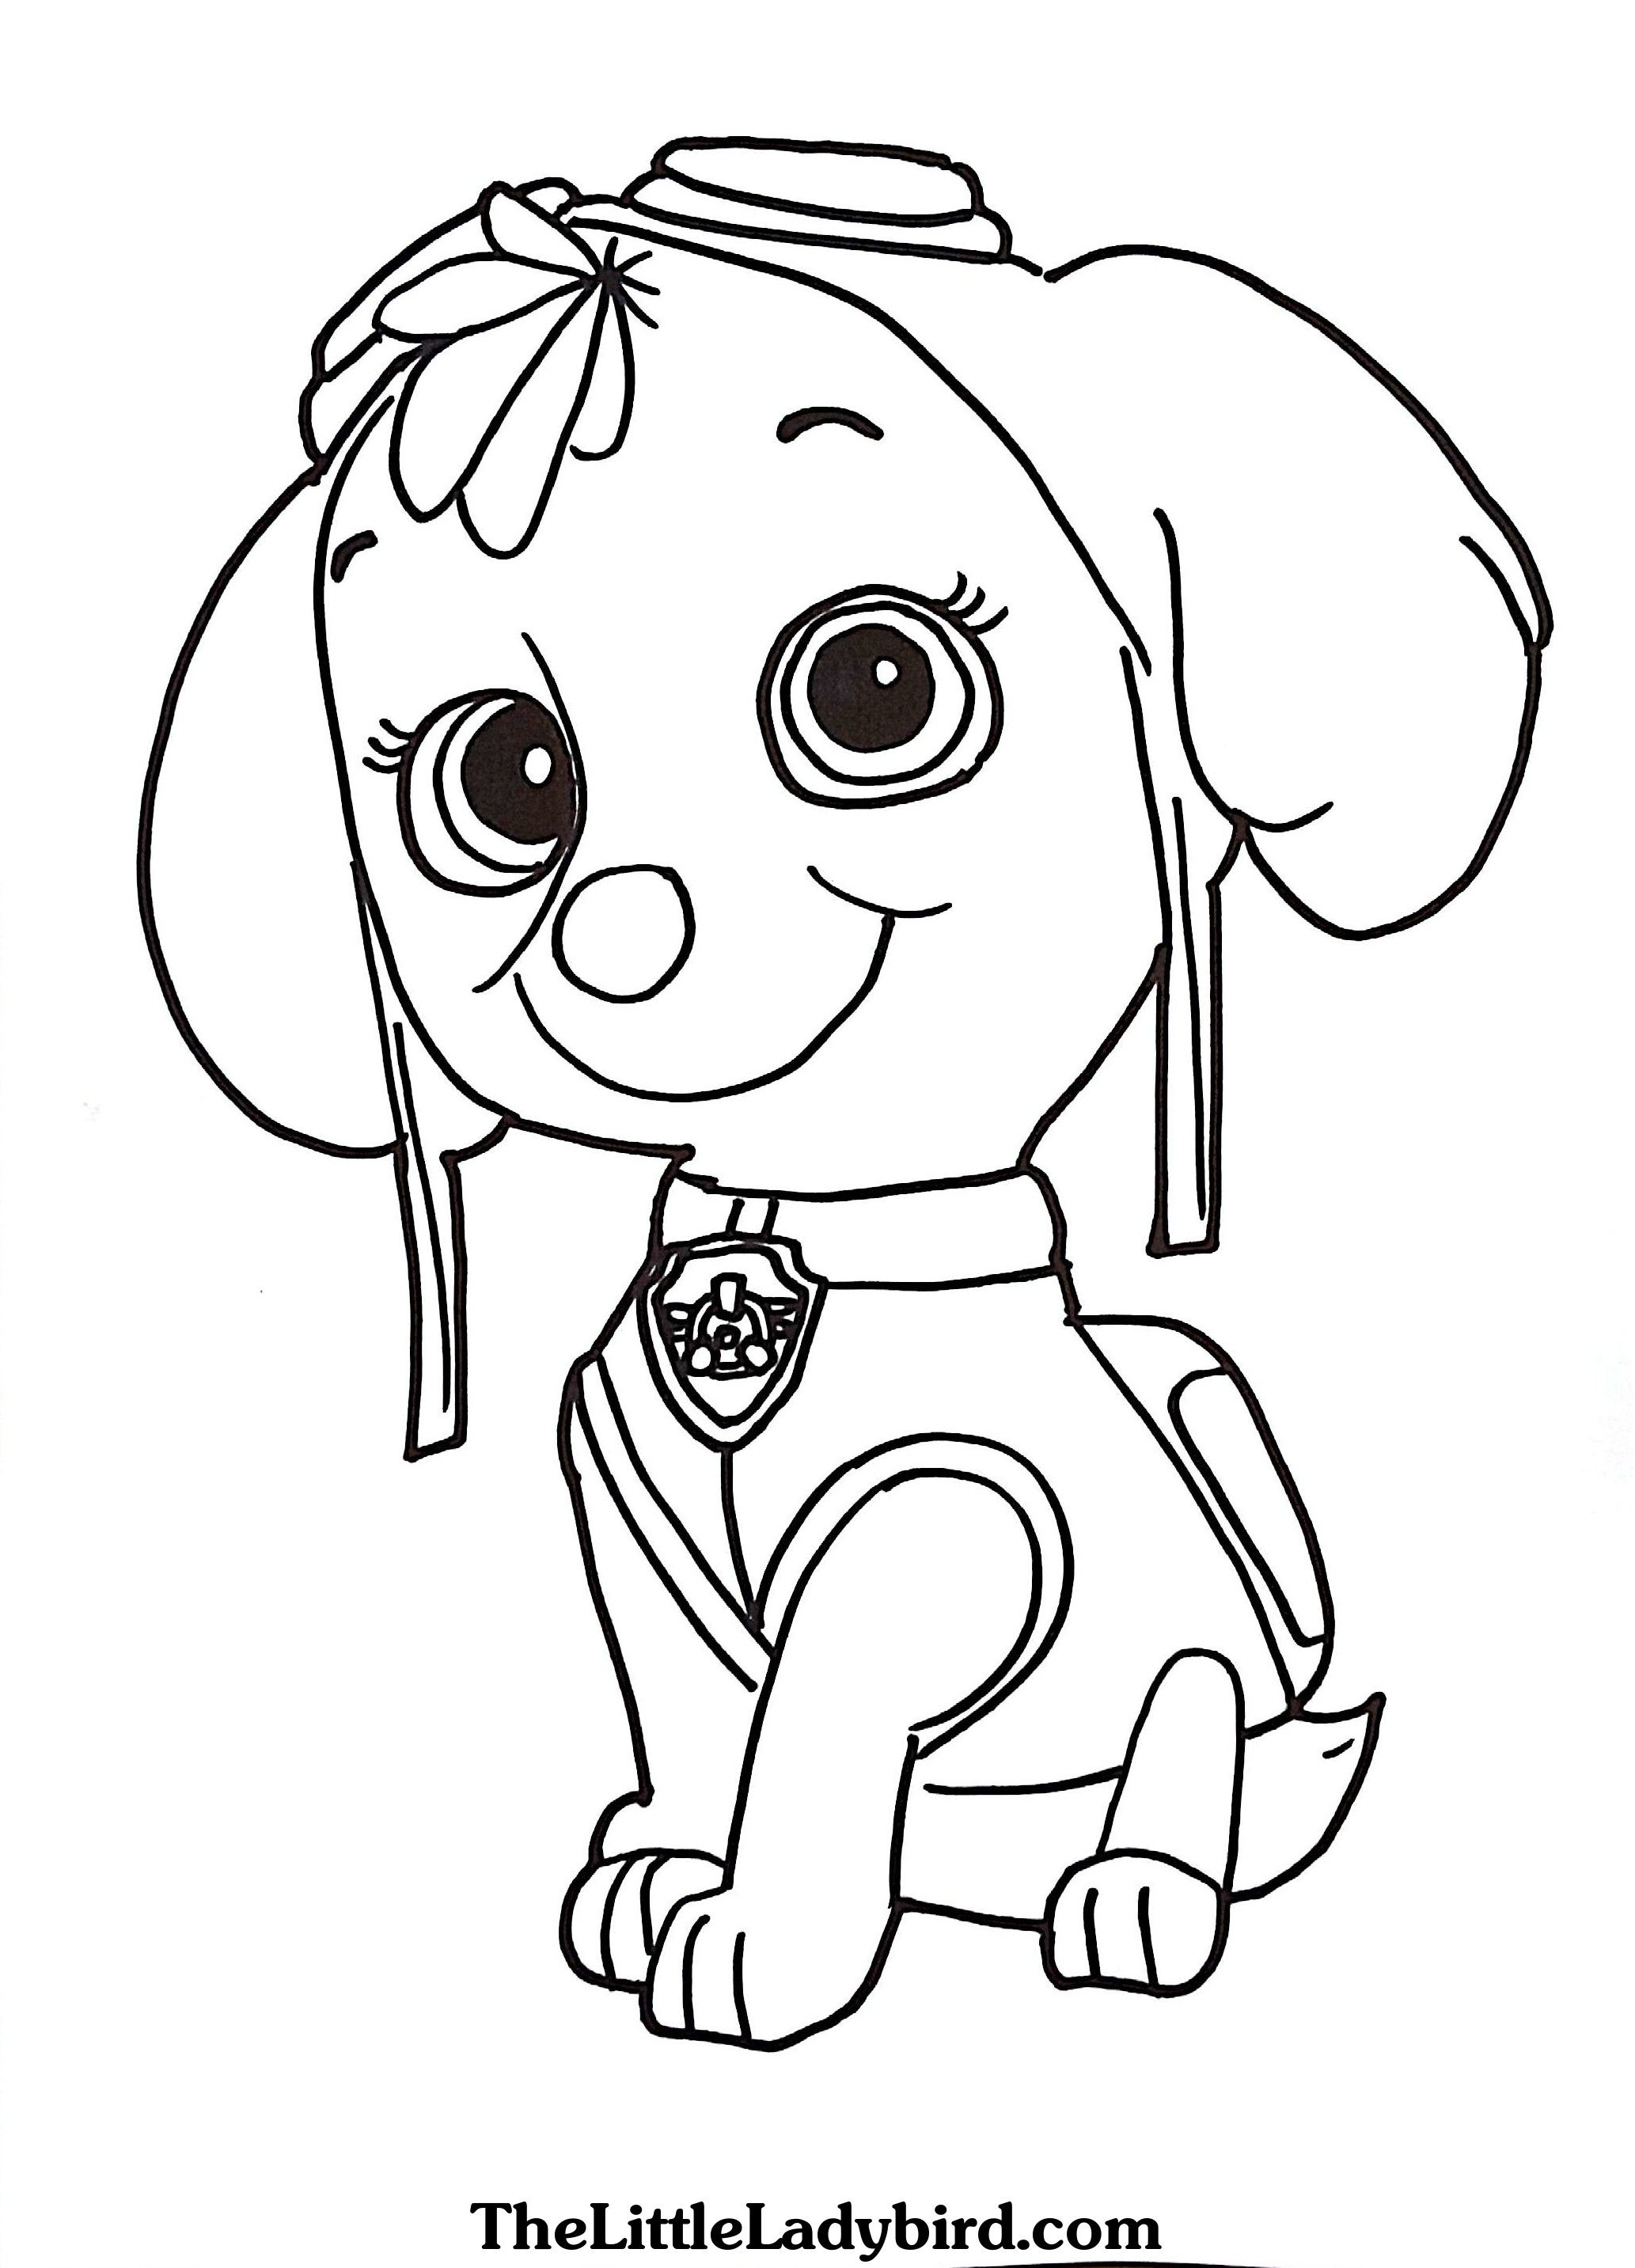 25 Creative Picture Of Free Paw Patrol Coloring Pages Albanysinsanity Com Paw Patrol Coloring Pages Paw Patrol Coloring Paw Patrol Badge